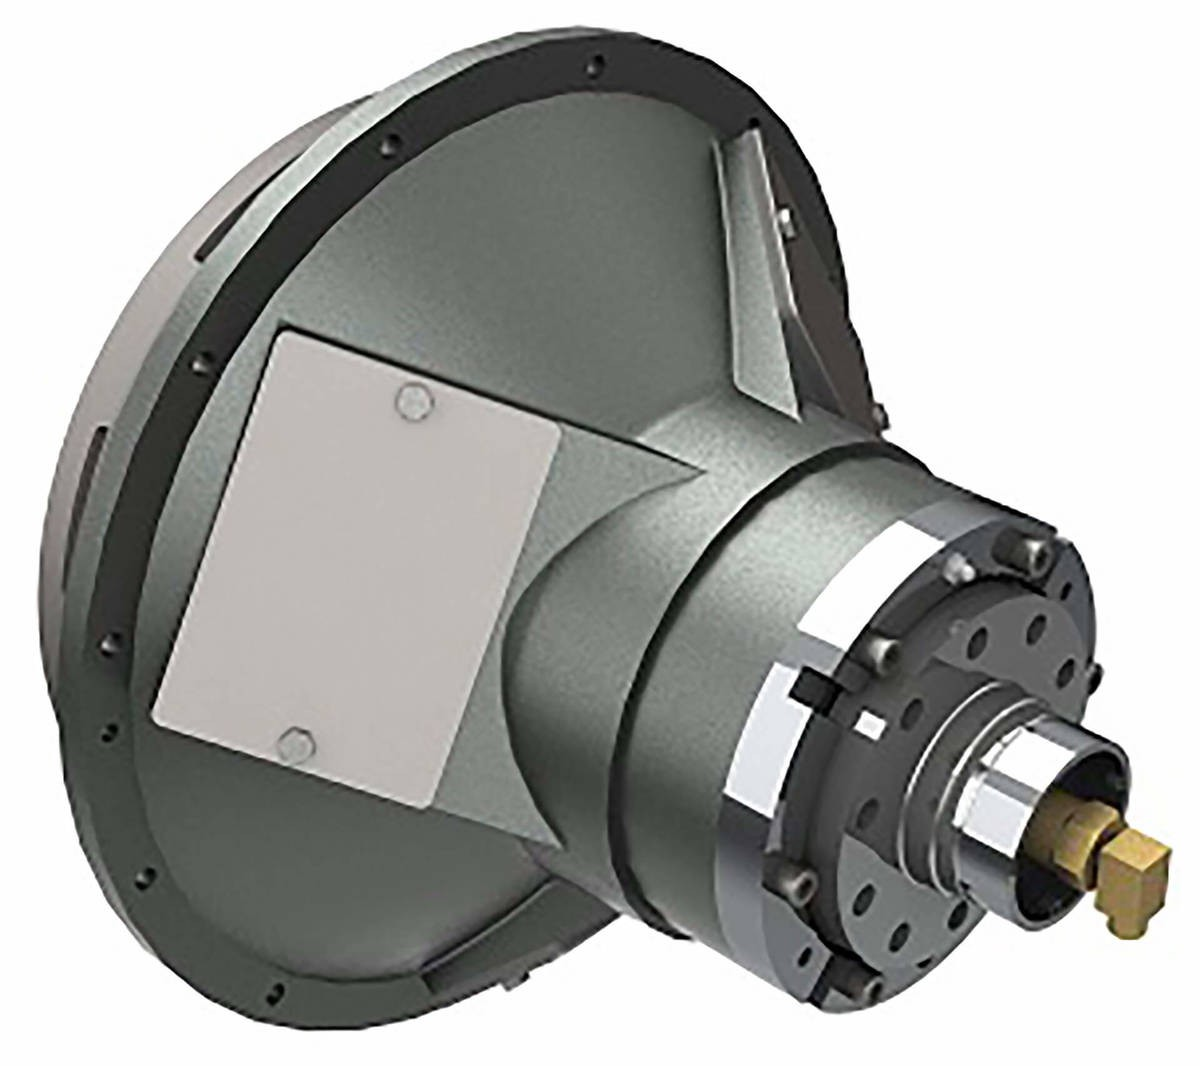 Desch Planox® PHA actuated hydraulically, bell-shaped model  Multi Plate Friction Clutch Image